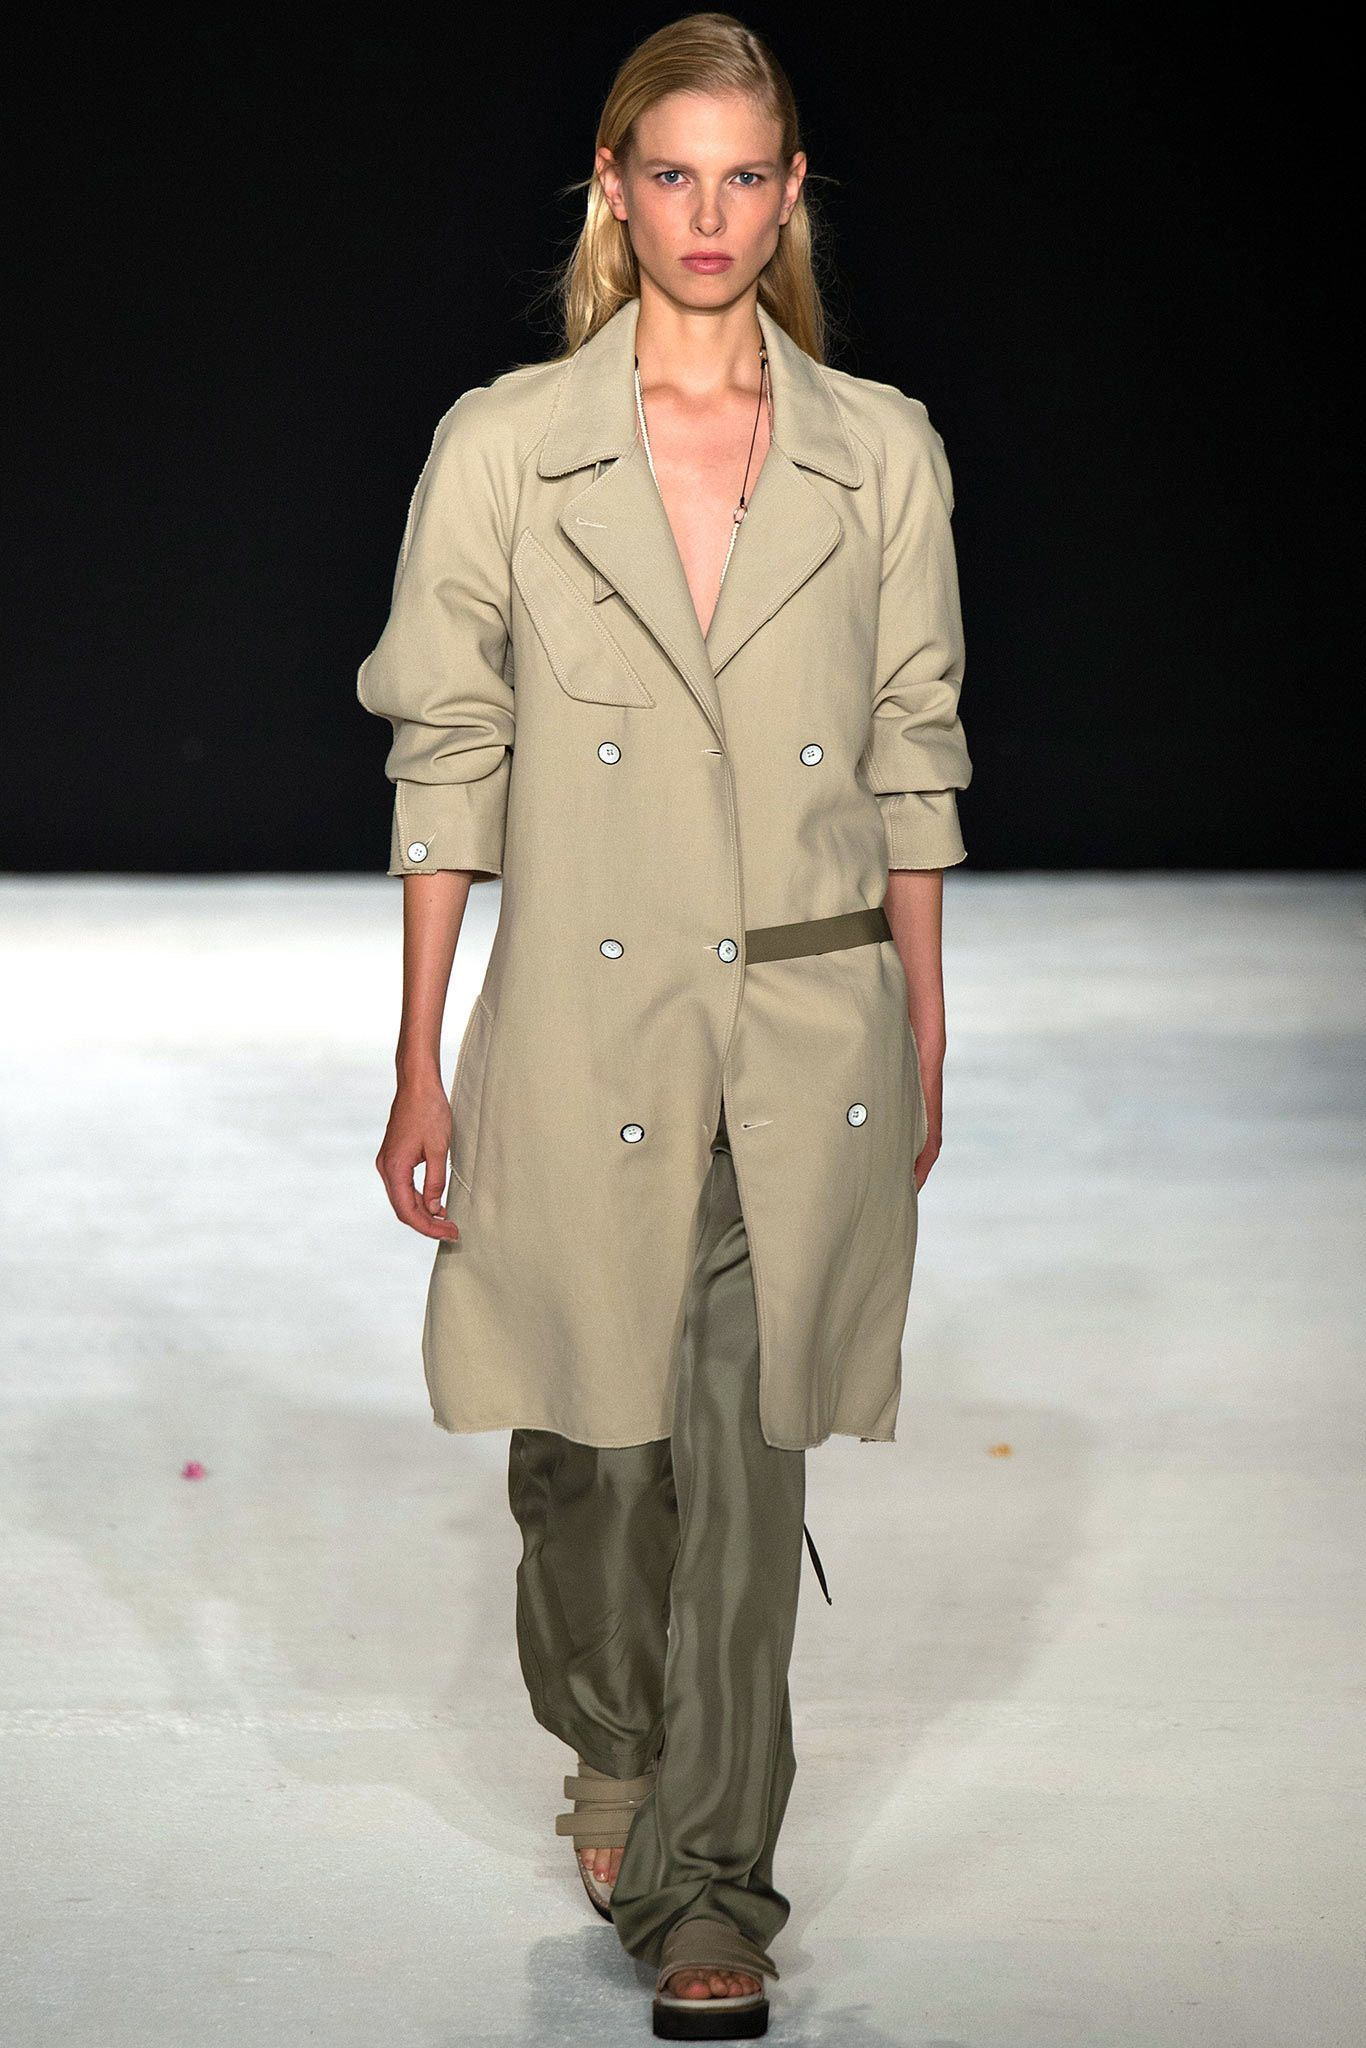 Forum on this topic: Spring 2015 Trend: MilitaryChic, spring-2015-trend-militarychic/